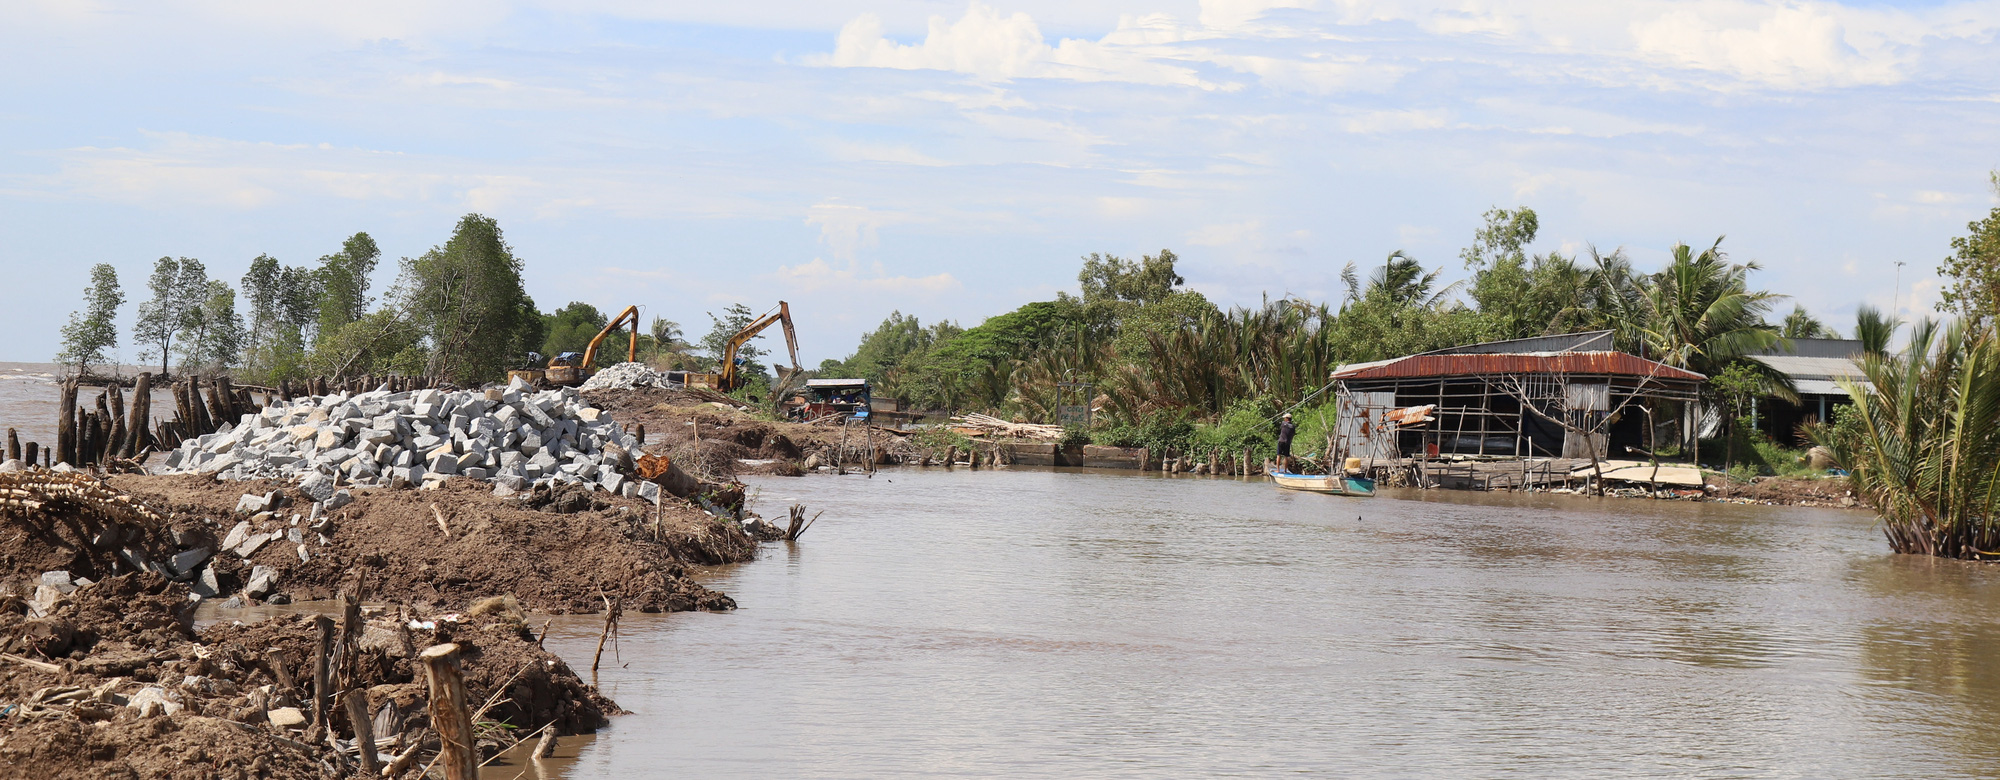 A residential area affected by coastal erosion in Ca Mau Province, Vietnam. Photo: Chi Quoc / Tuoi Tre